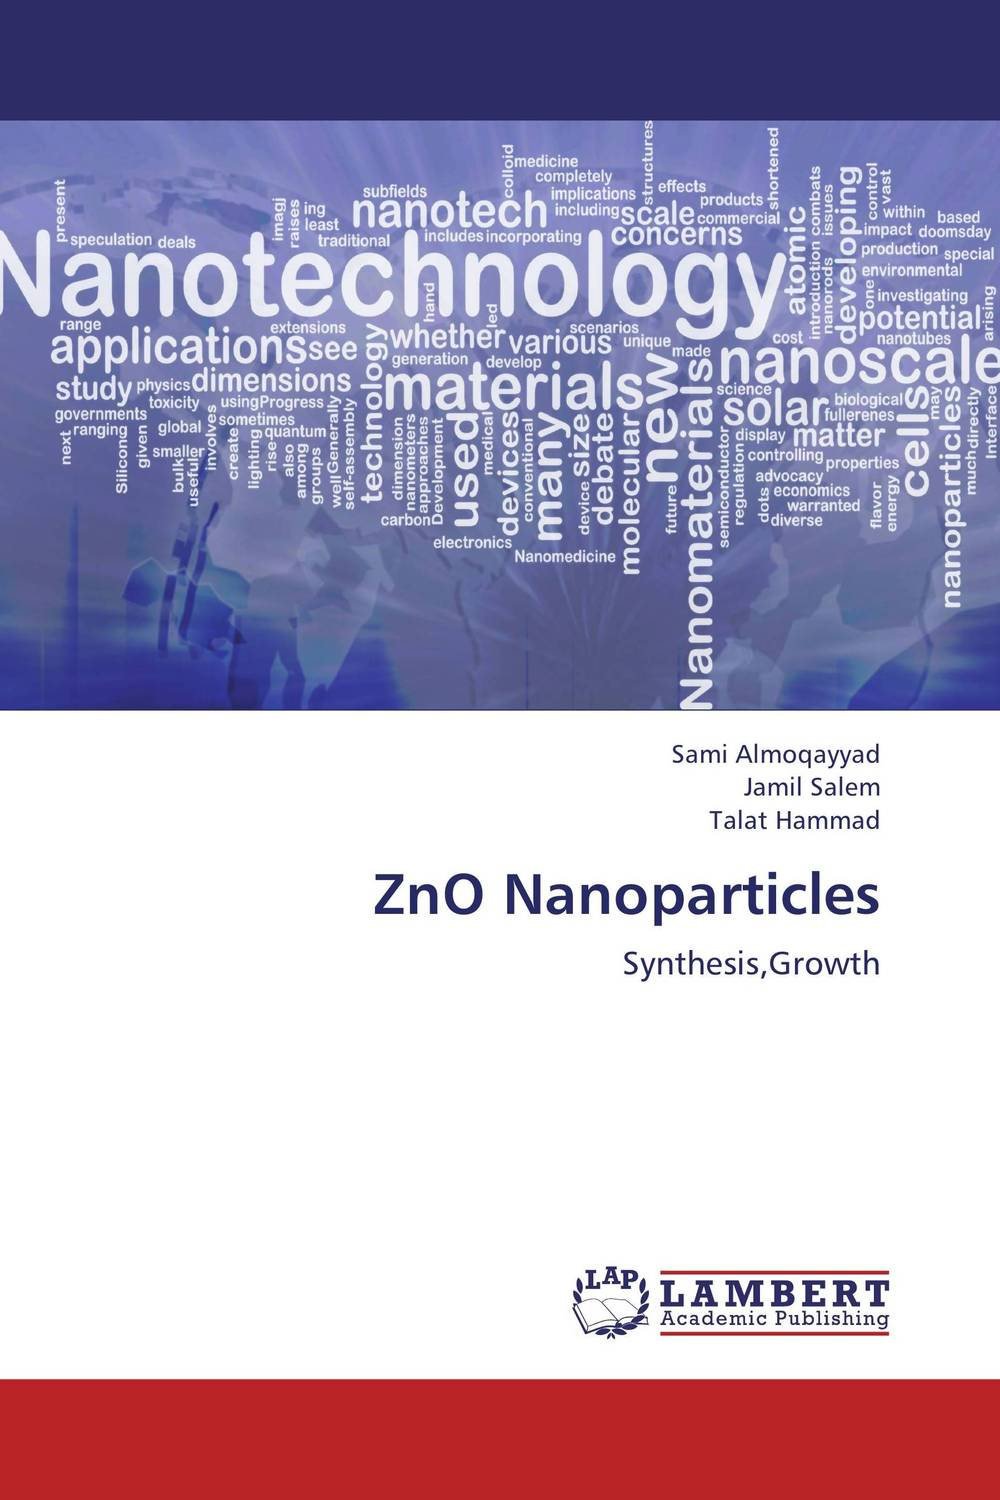 ZnO Nanoparticles zno cds core shells optical sensor fabrication using chemical method